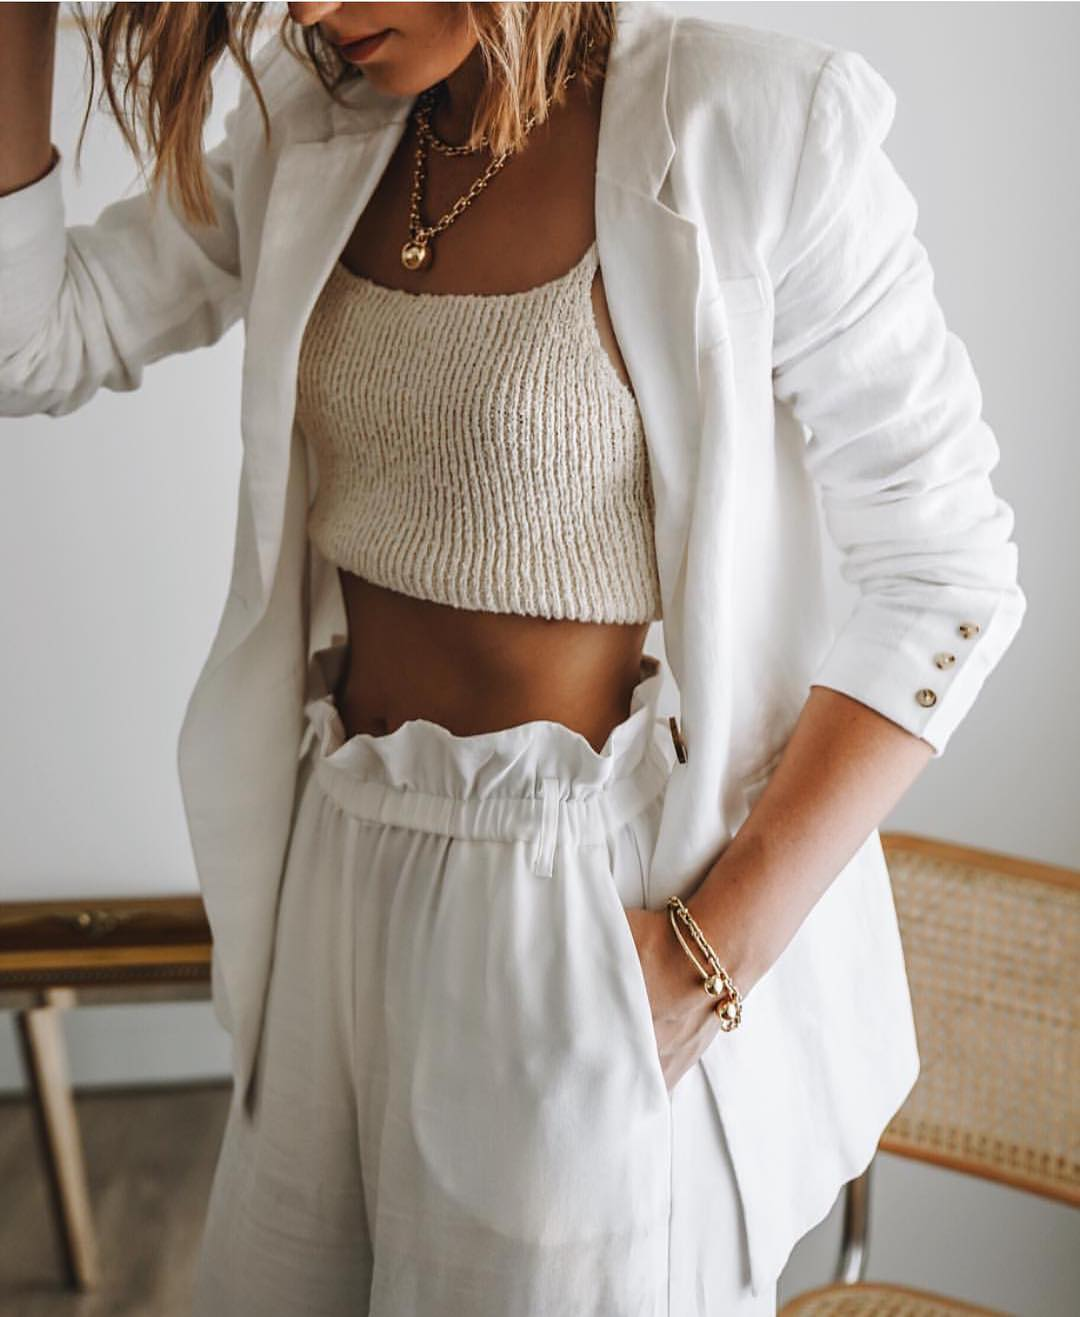 Blazer, Knitted Crop Top And Gathered Pants: All White Look For Spring 2019